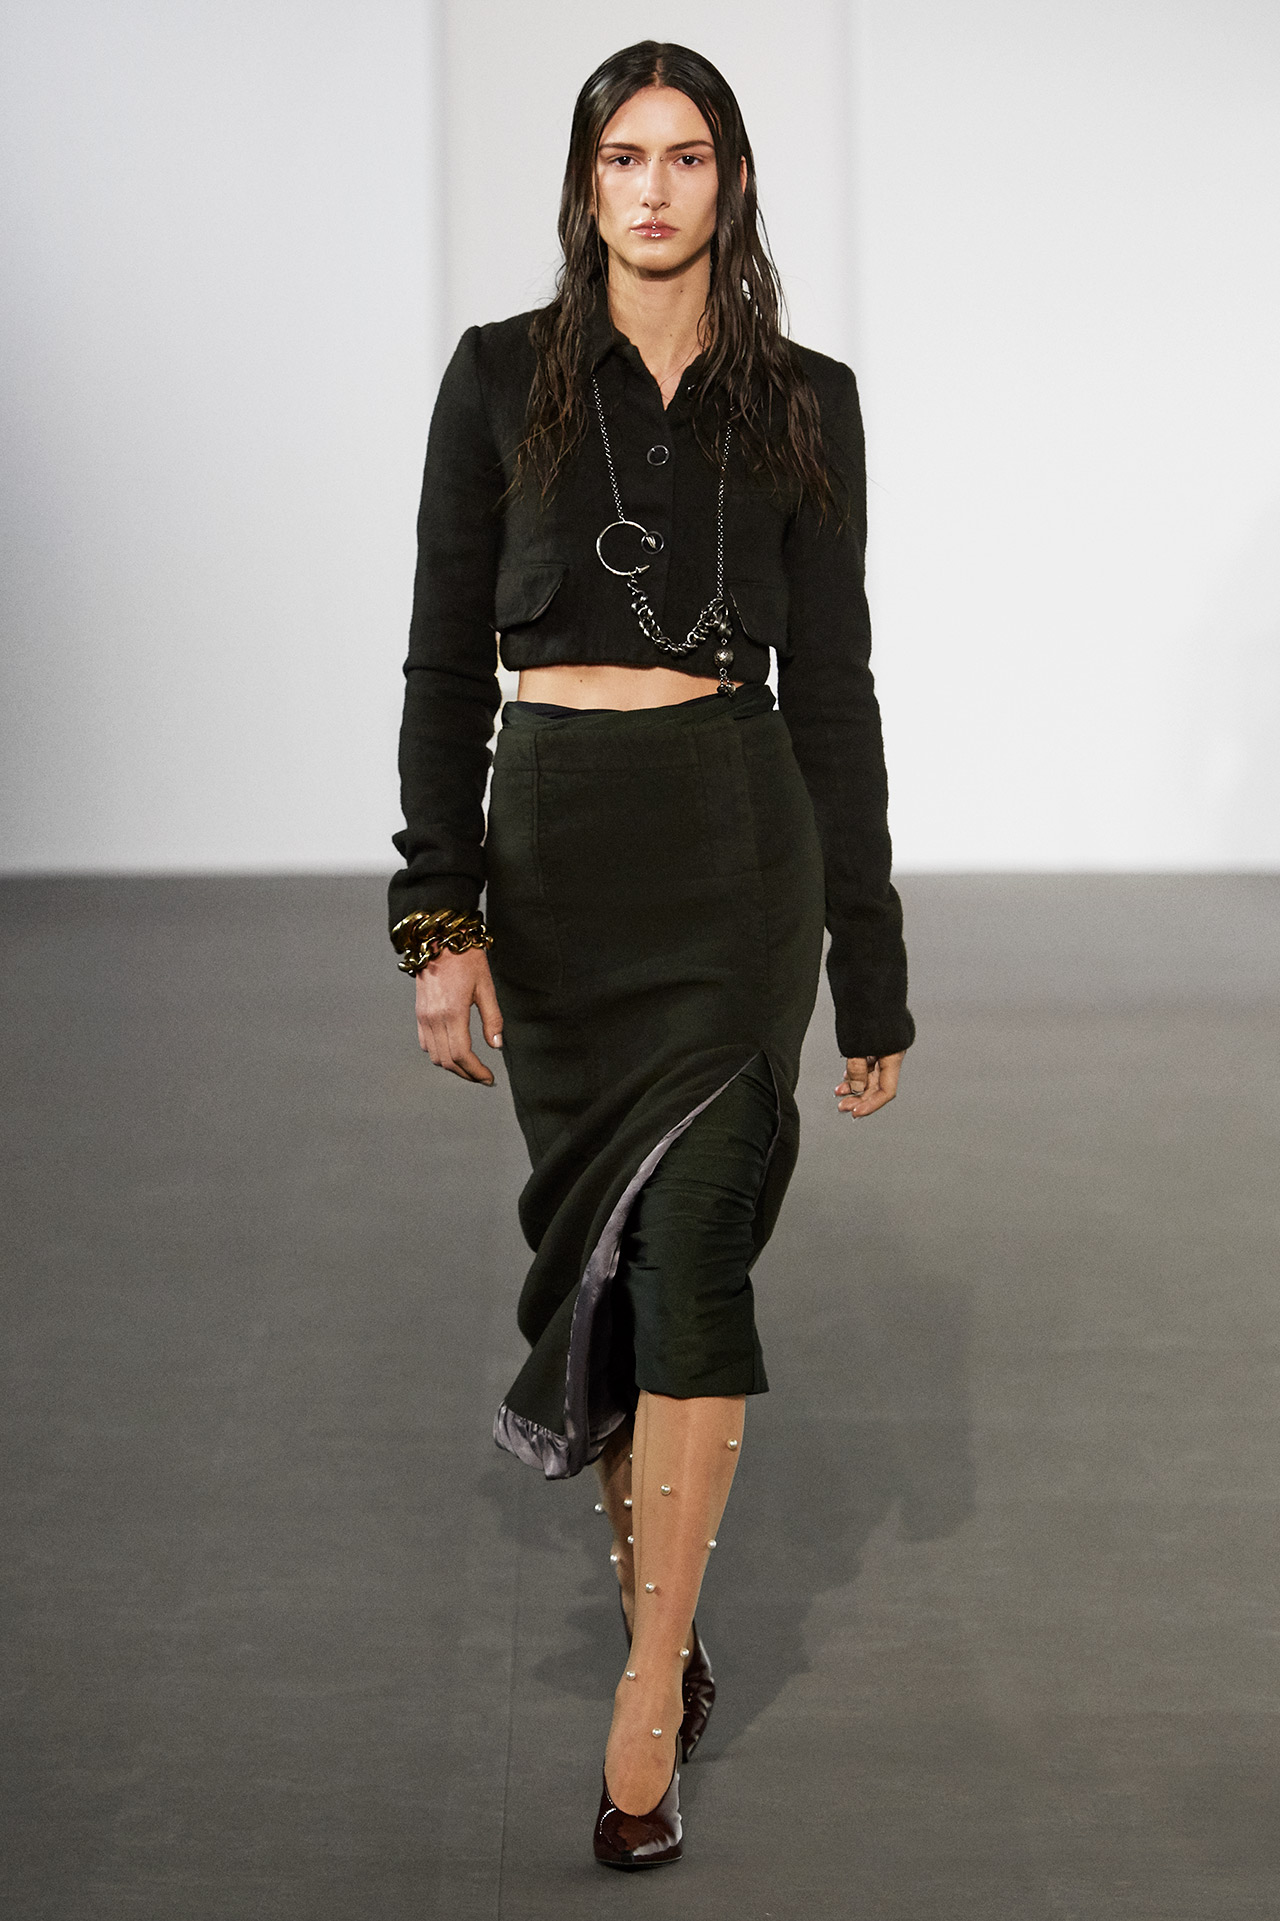 Look Fall/Winter 2020, image 25